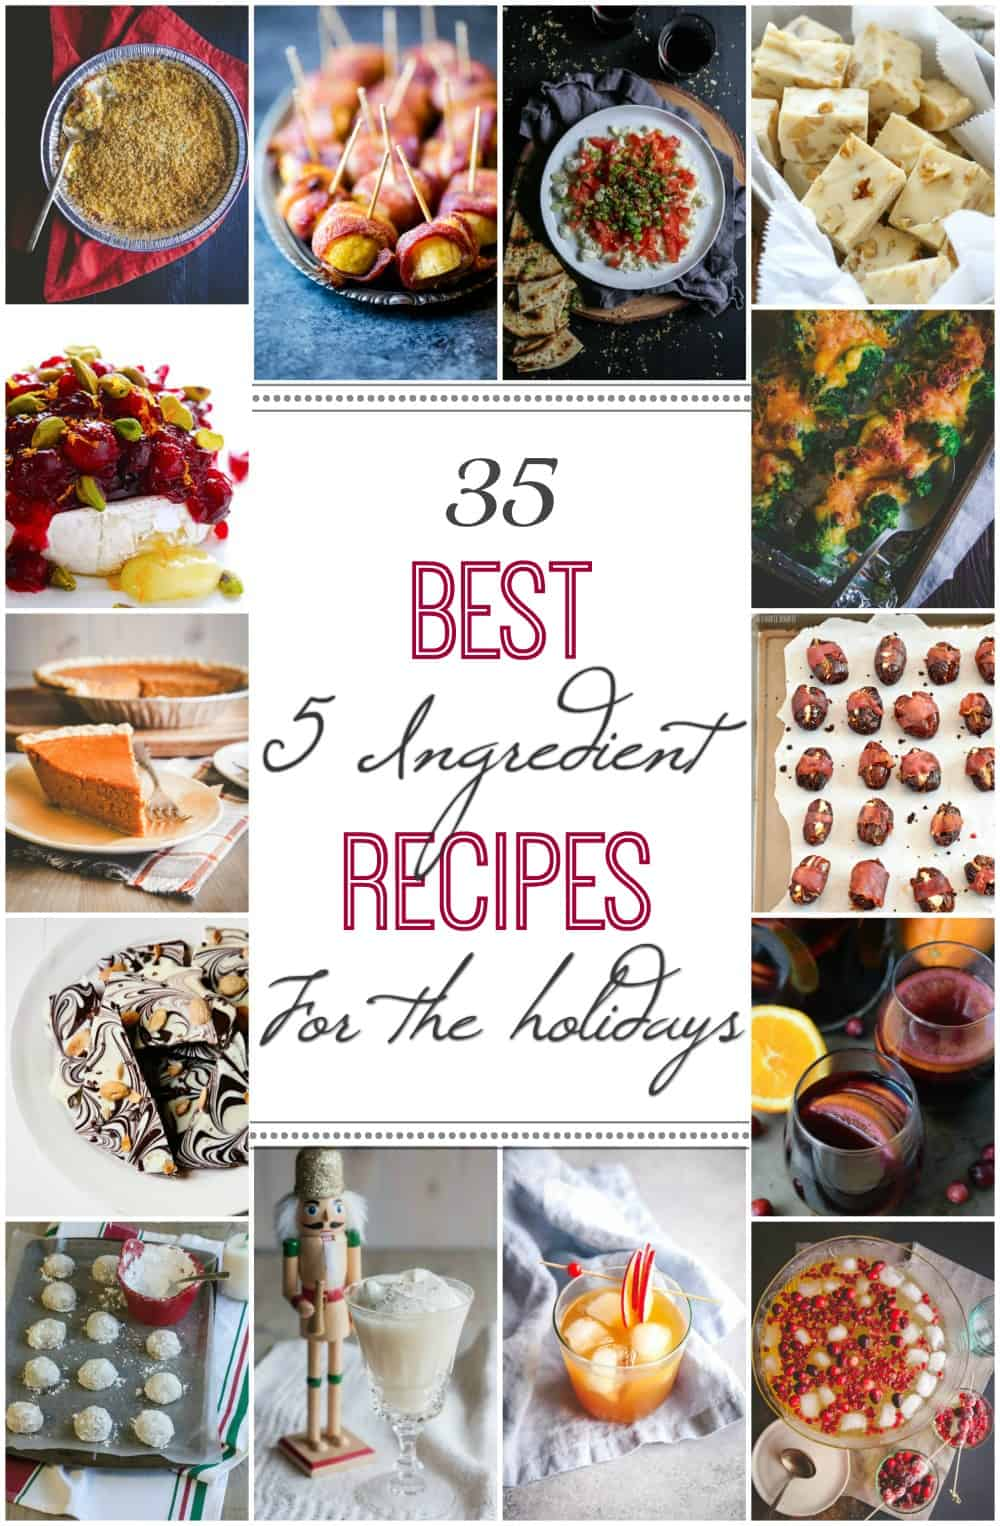 35 of the best 5 ingredient recipes for the holidays